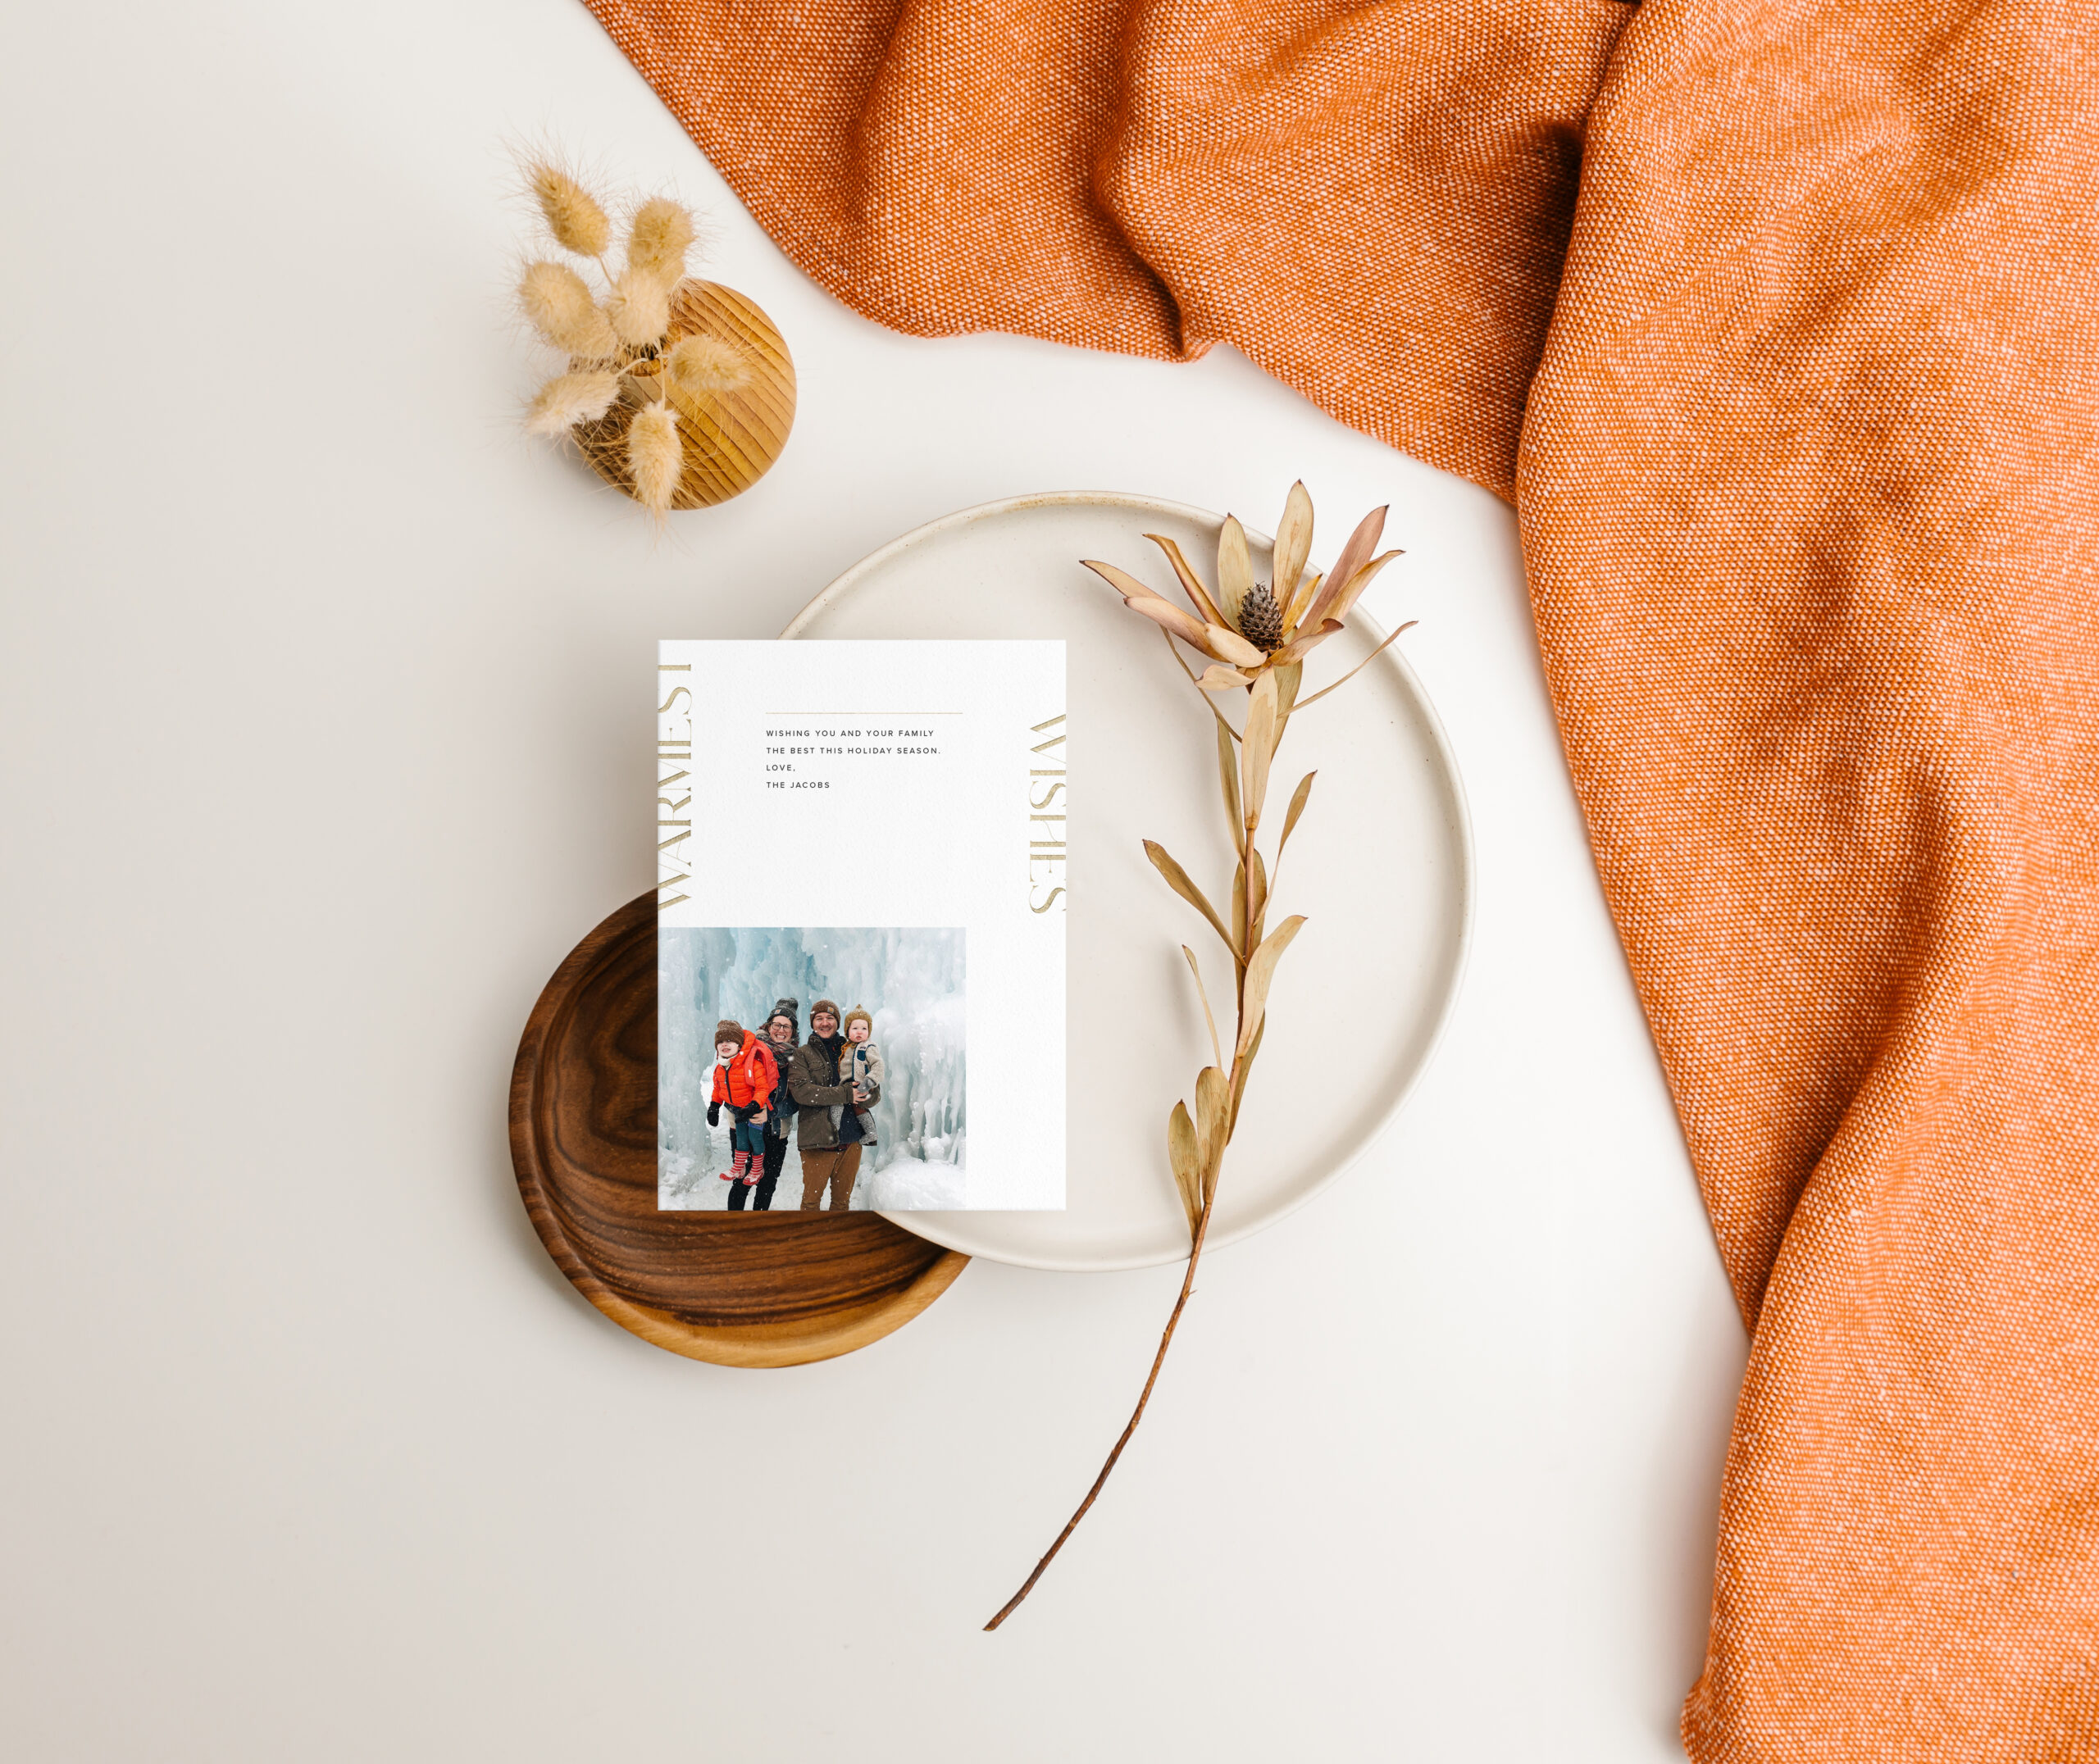 20191002-holiday-card-top-down-on-table-throw-blanket